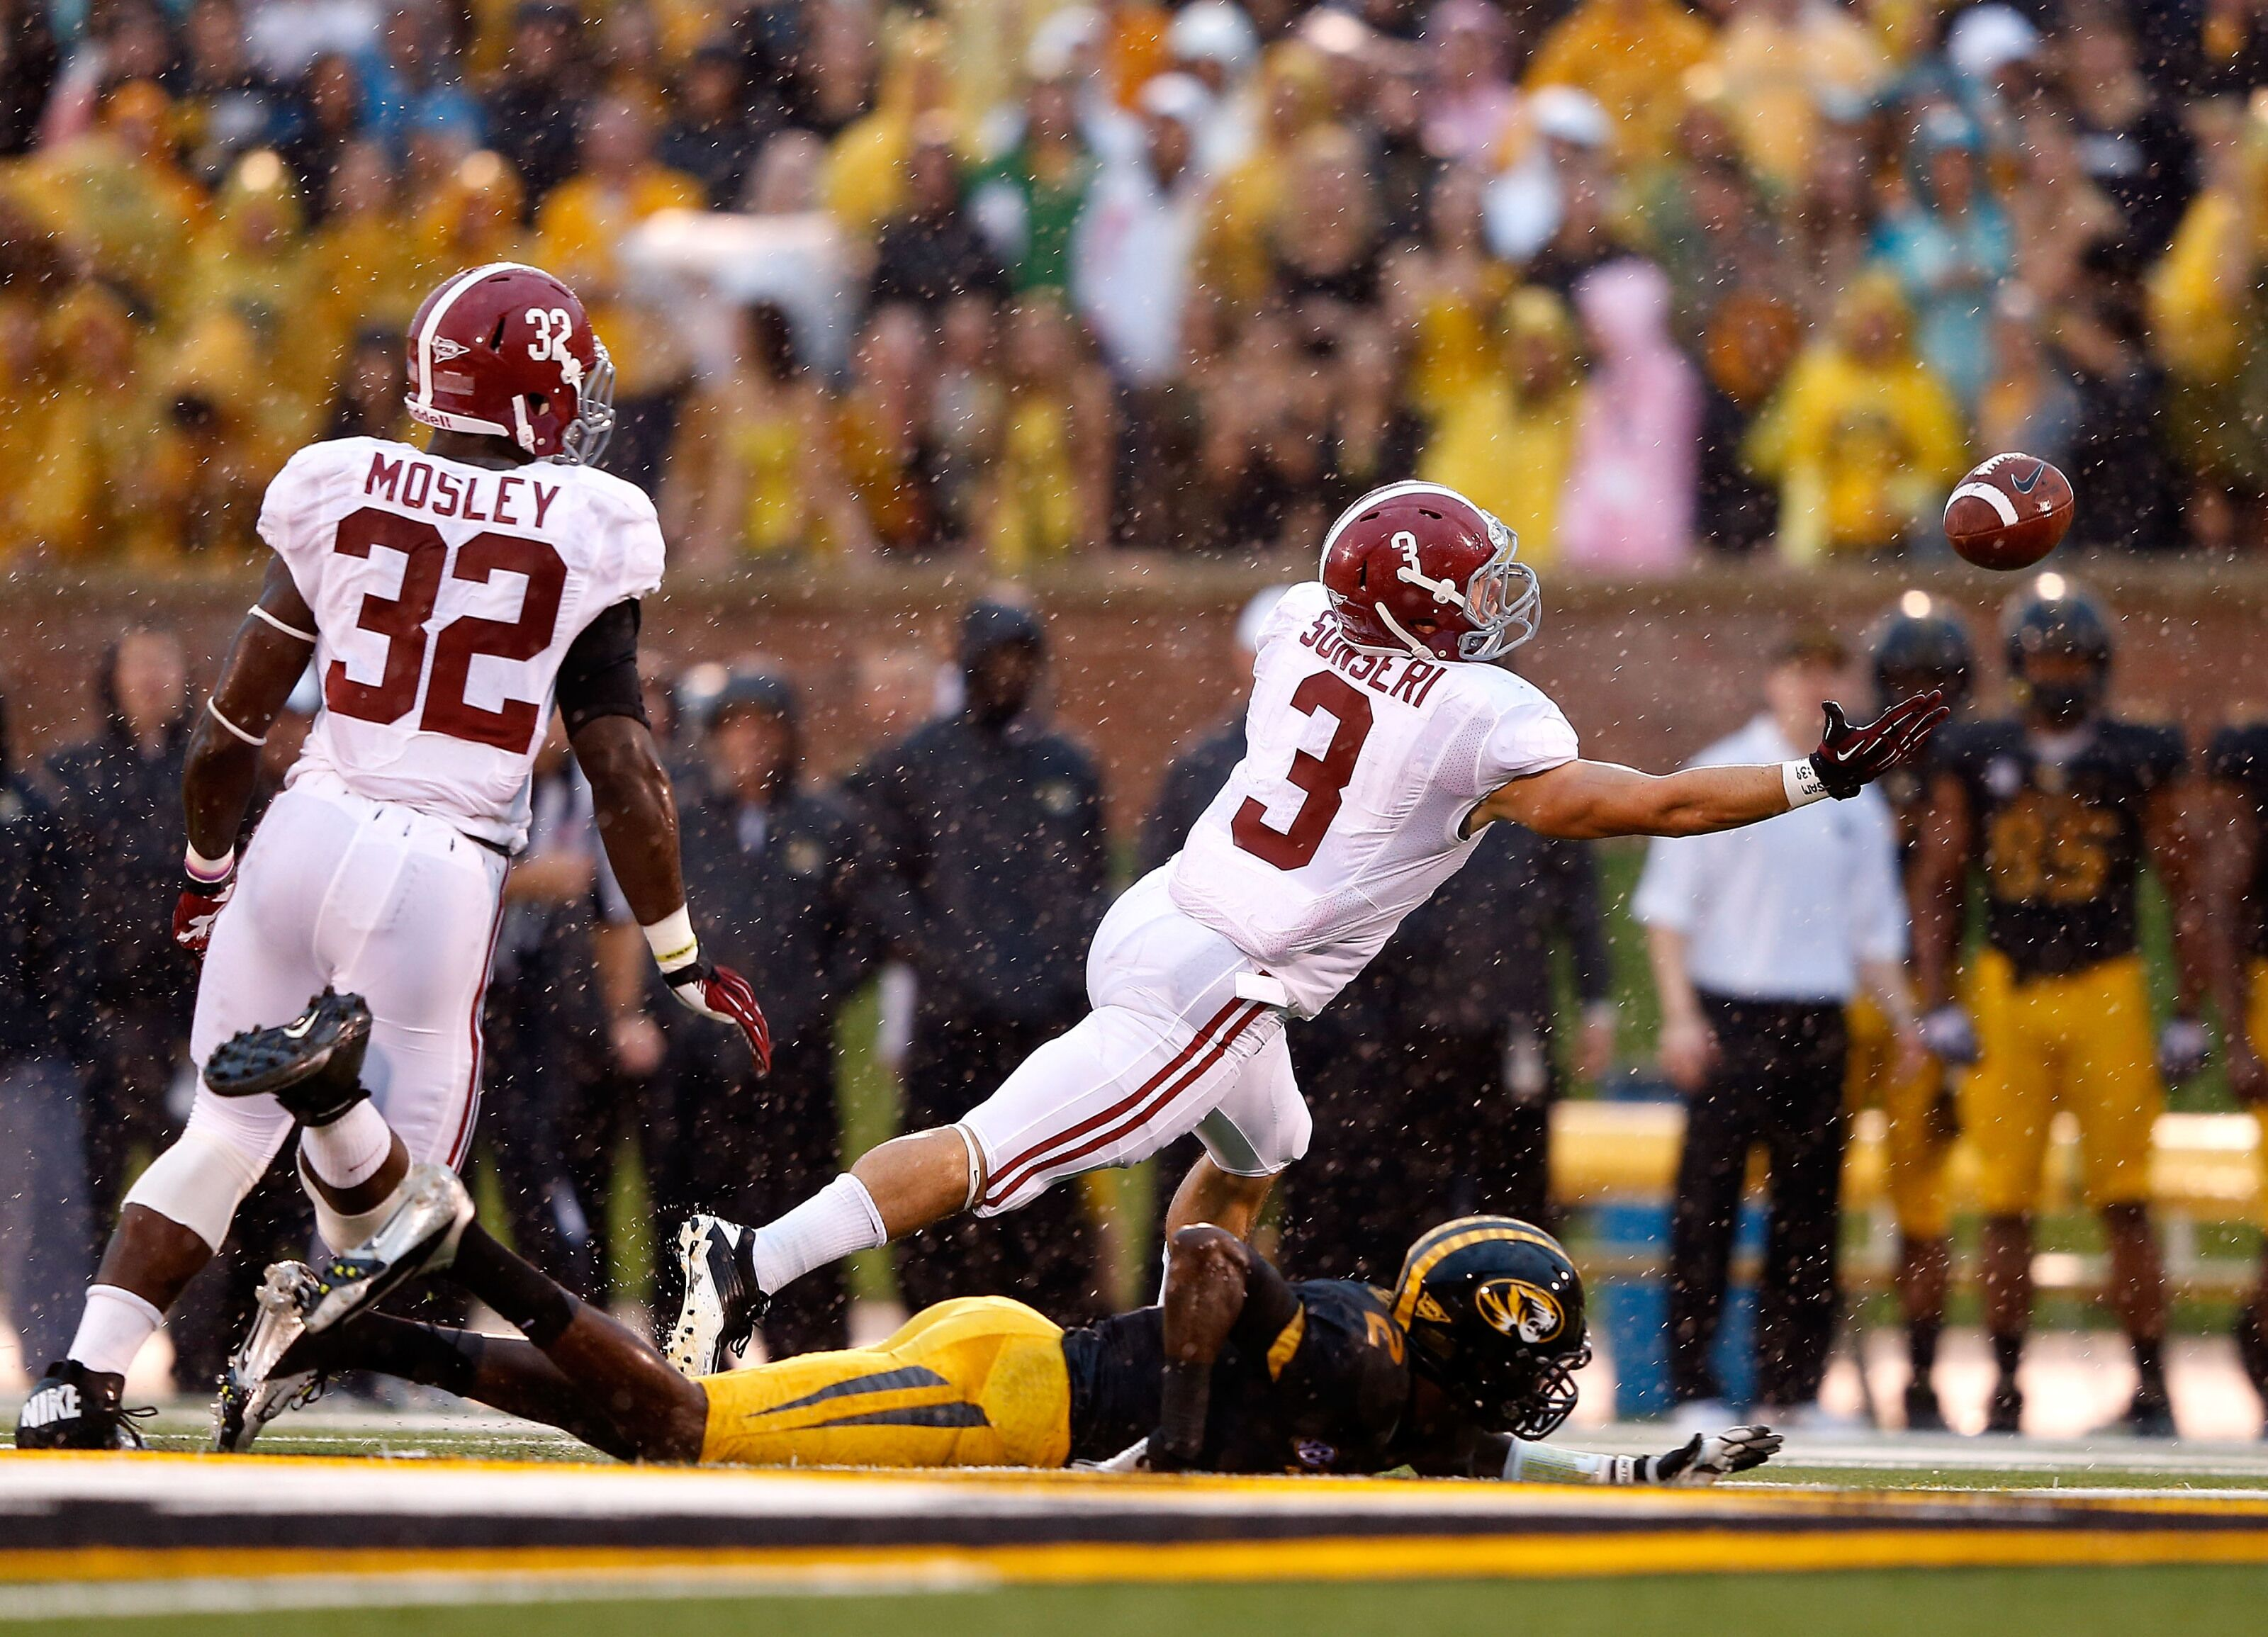 Alabama Football: Sal and sons could settle in Tuscaloosa